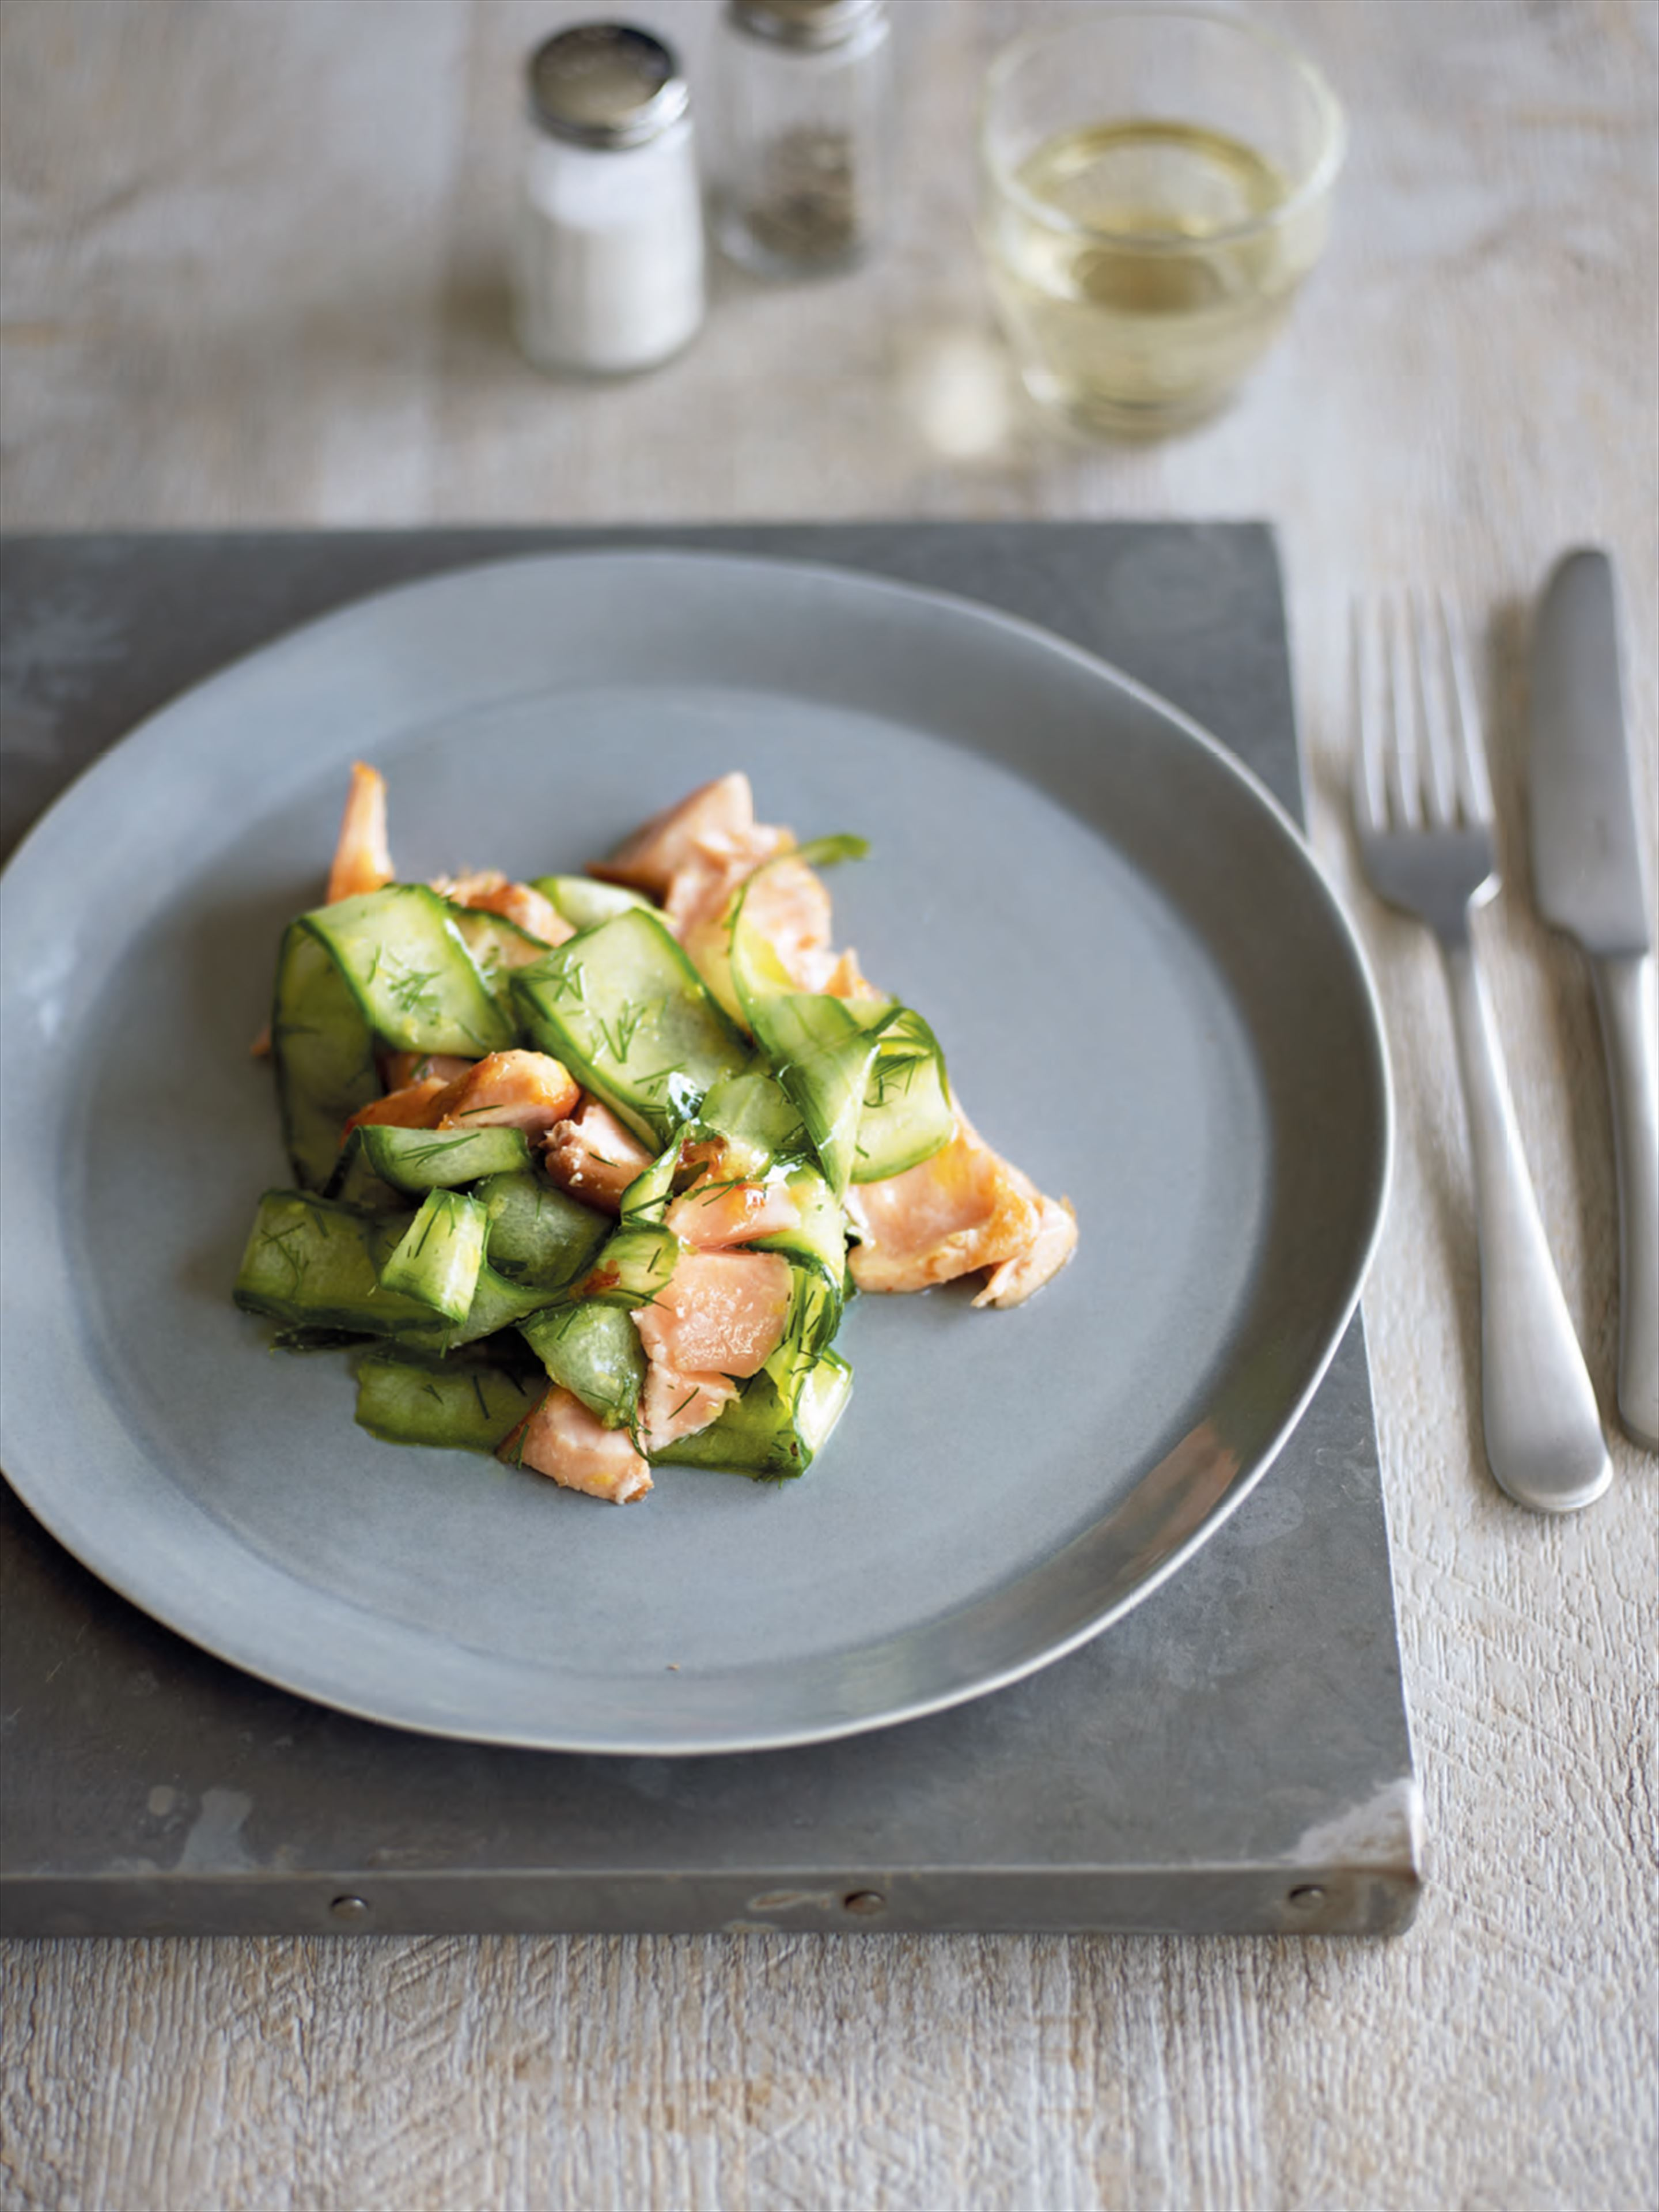 Pan-roasted chilli salmon with cucumber ribbons